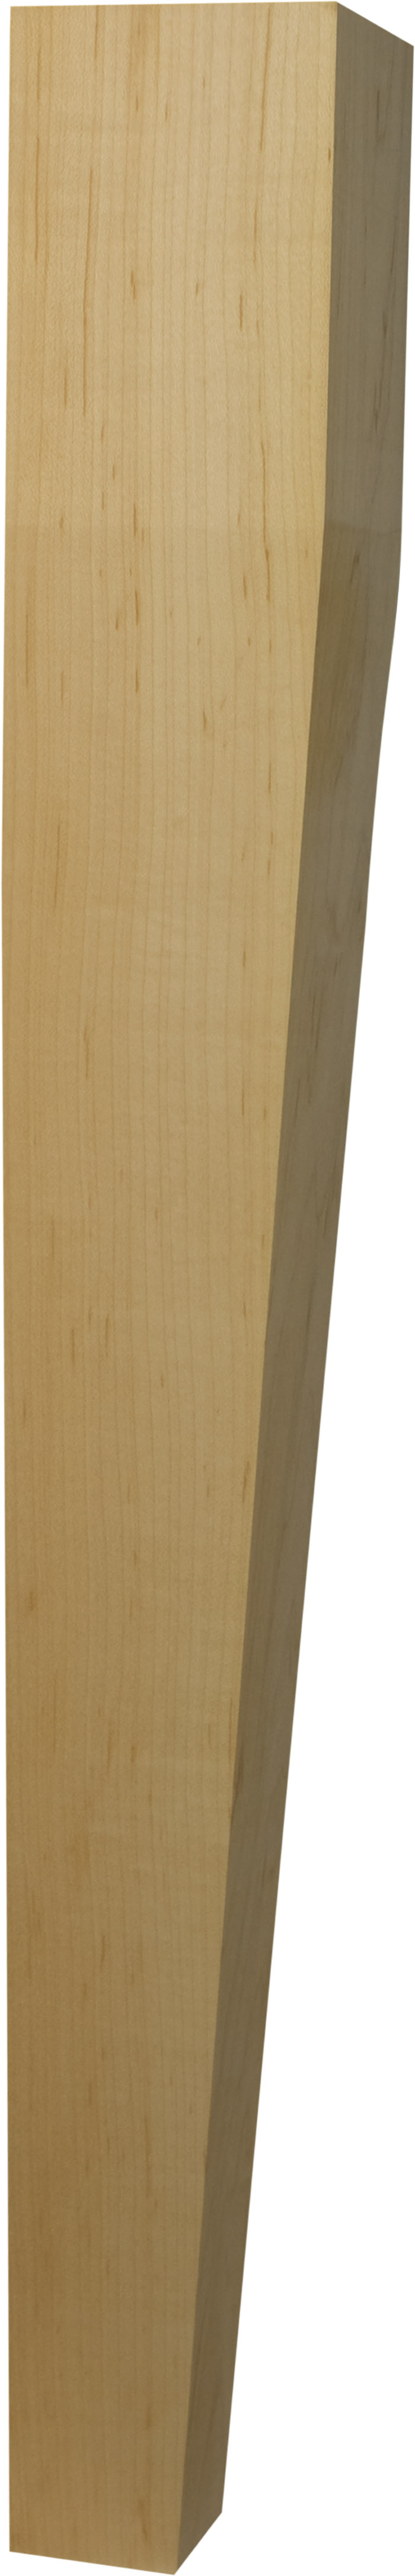 Two sided tapered dining table leg